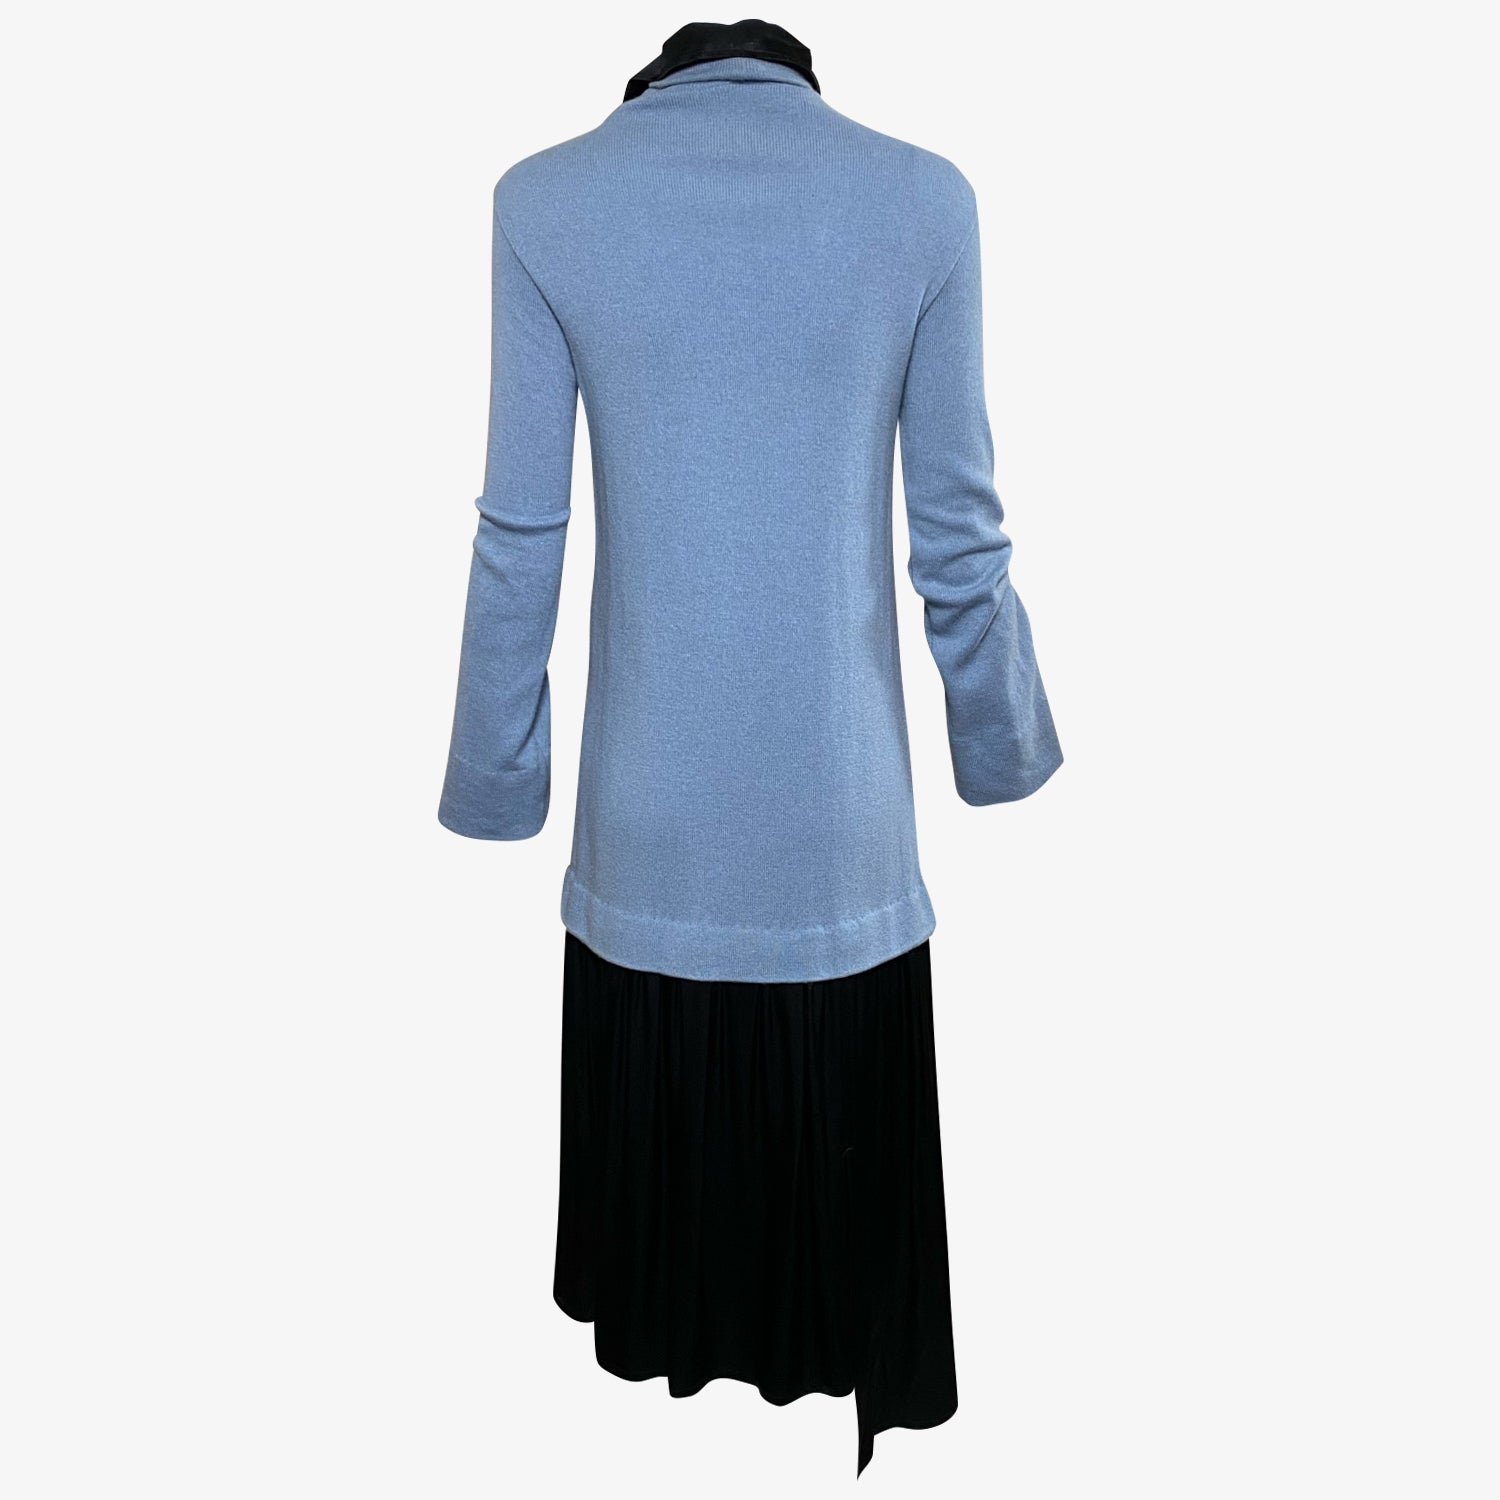 Yohji Yamamoto Noir Baby Blue Wool Dress  With Drop Waist Satin Skirt  BACK 2 of 3